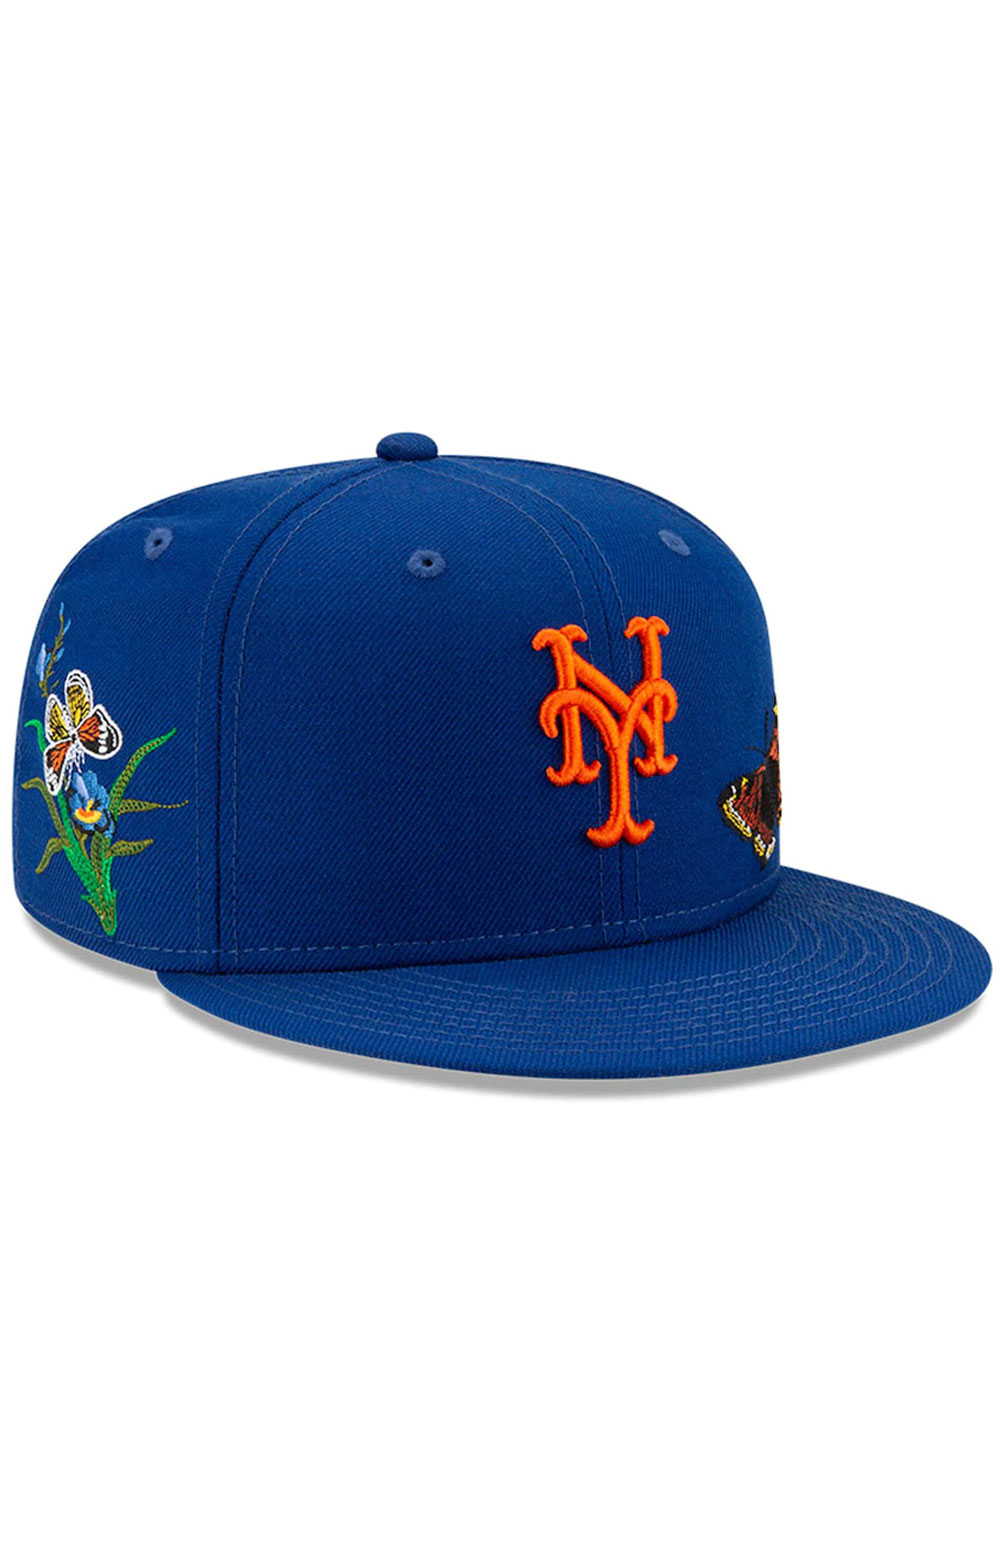 New York Mets 59Fifty Fitted Hat  3